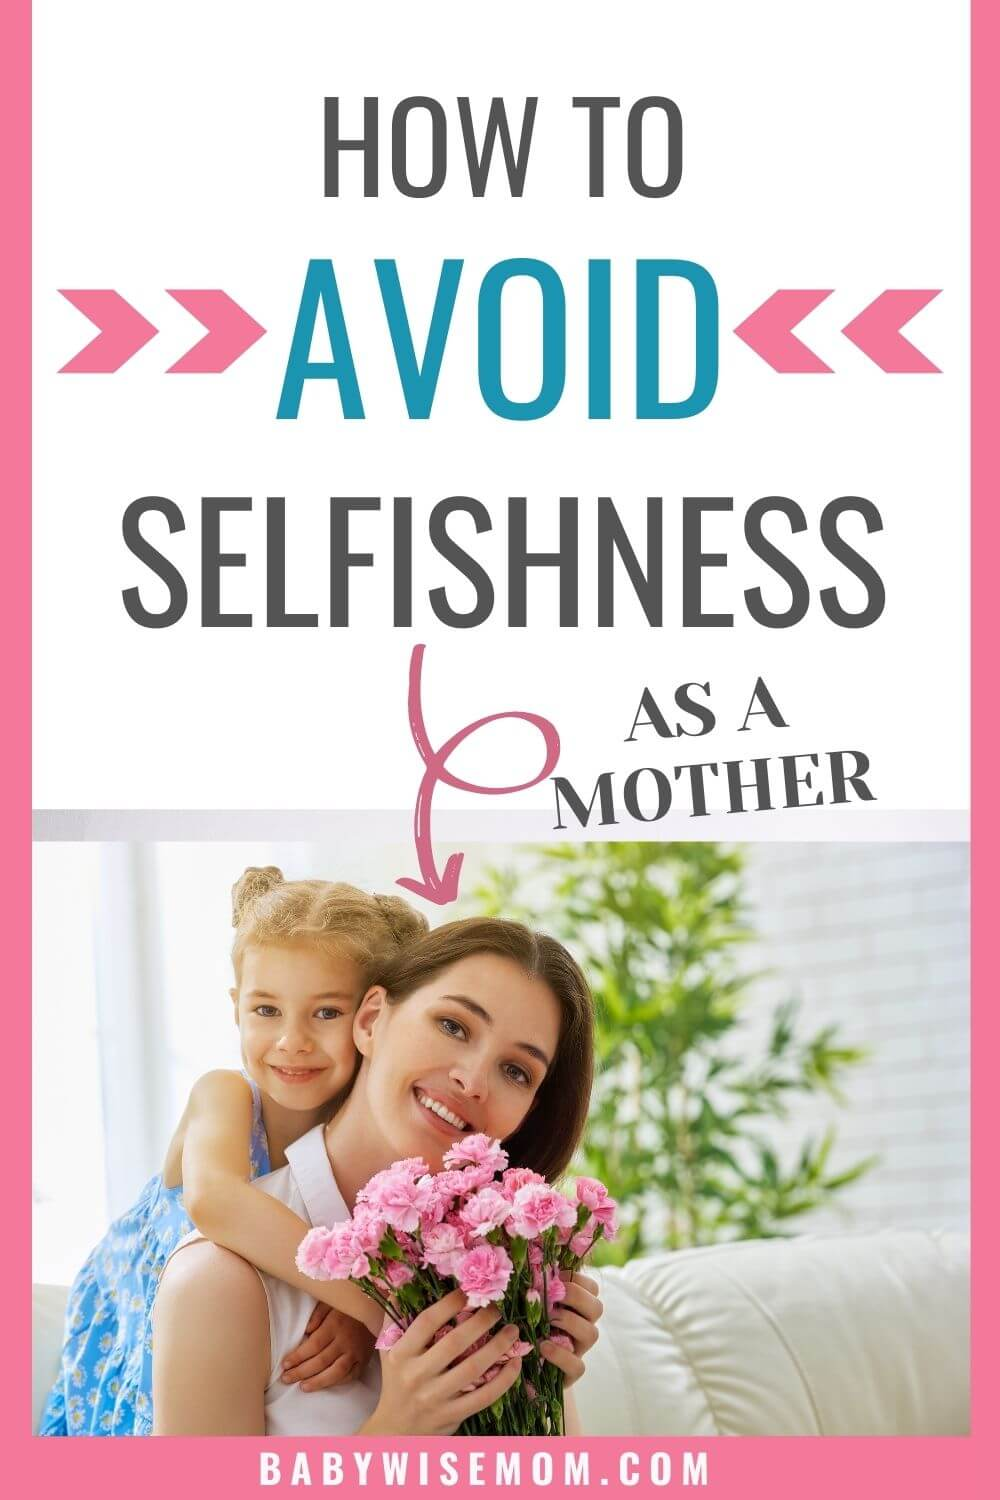 How to avoid selfishness as a mother